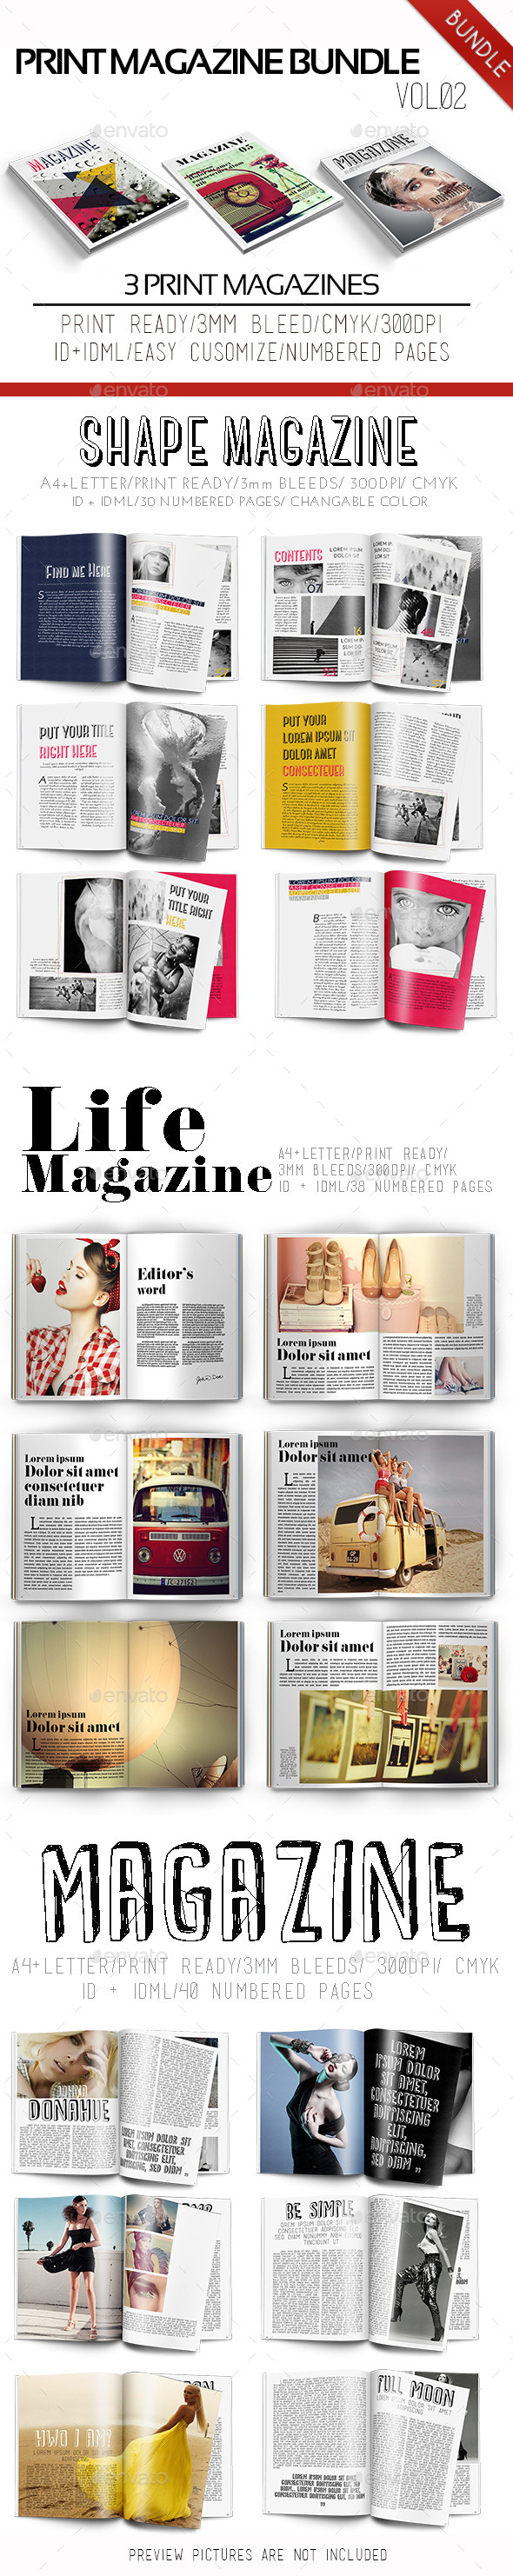 GraphicRiver Print Magazine Bundle Vol.02 9989691